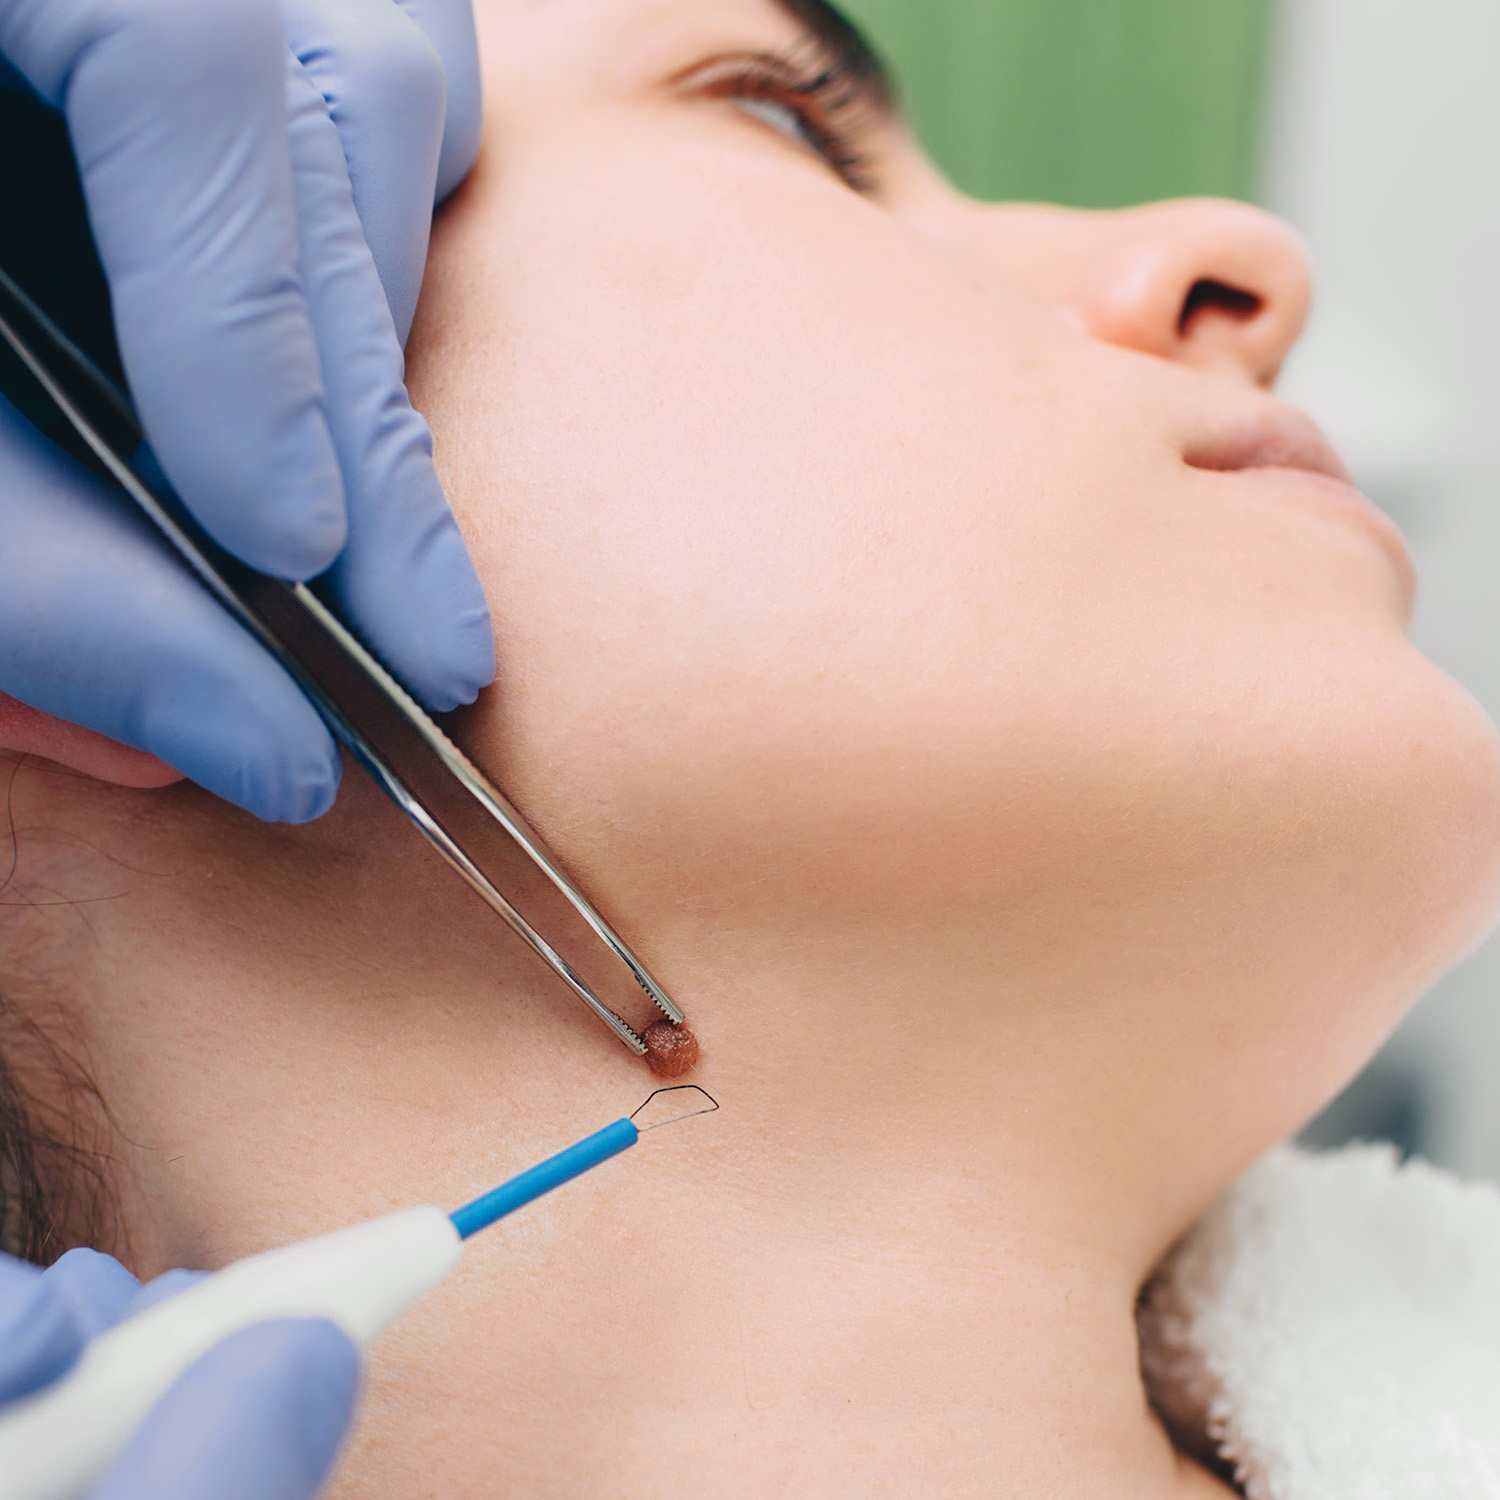 Low scarring mole removal now available